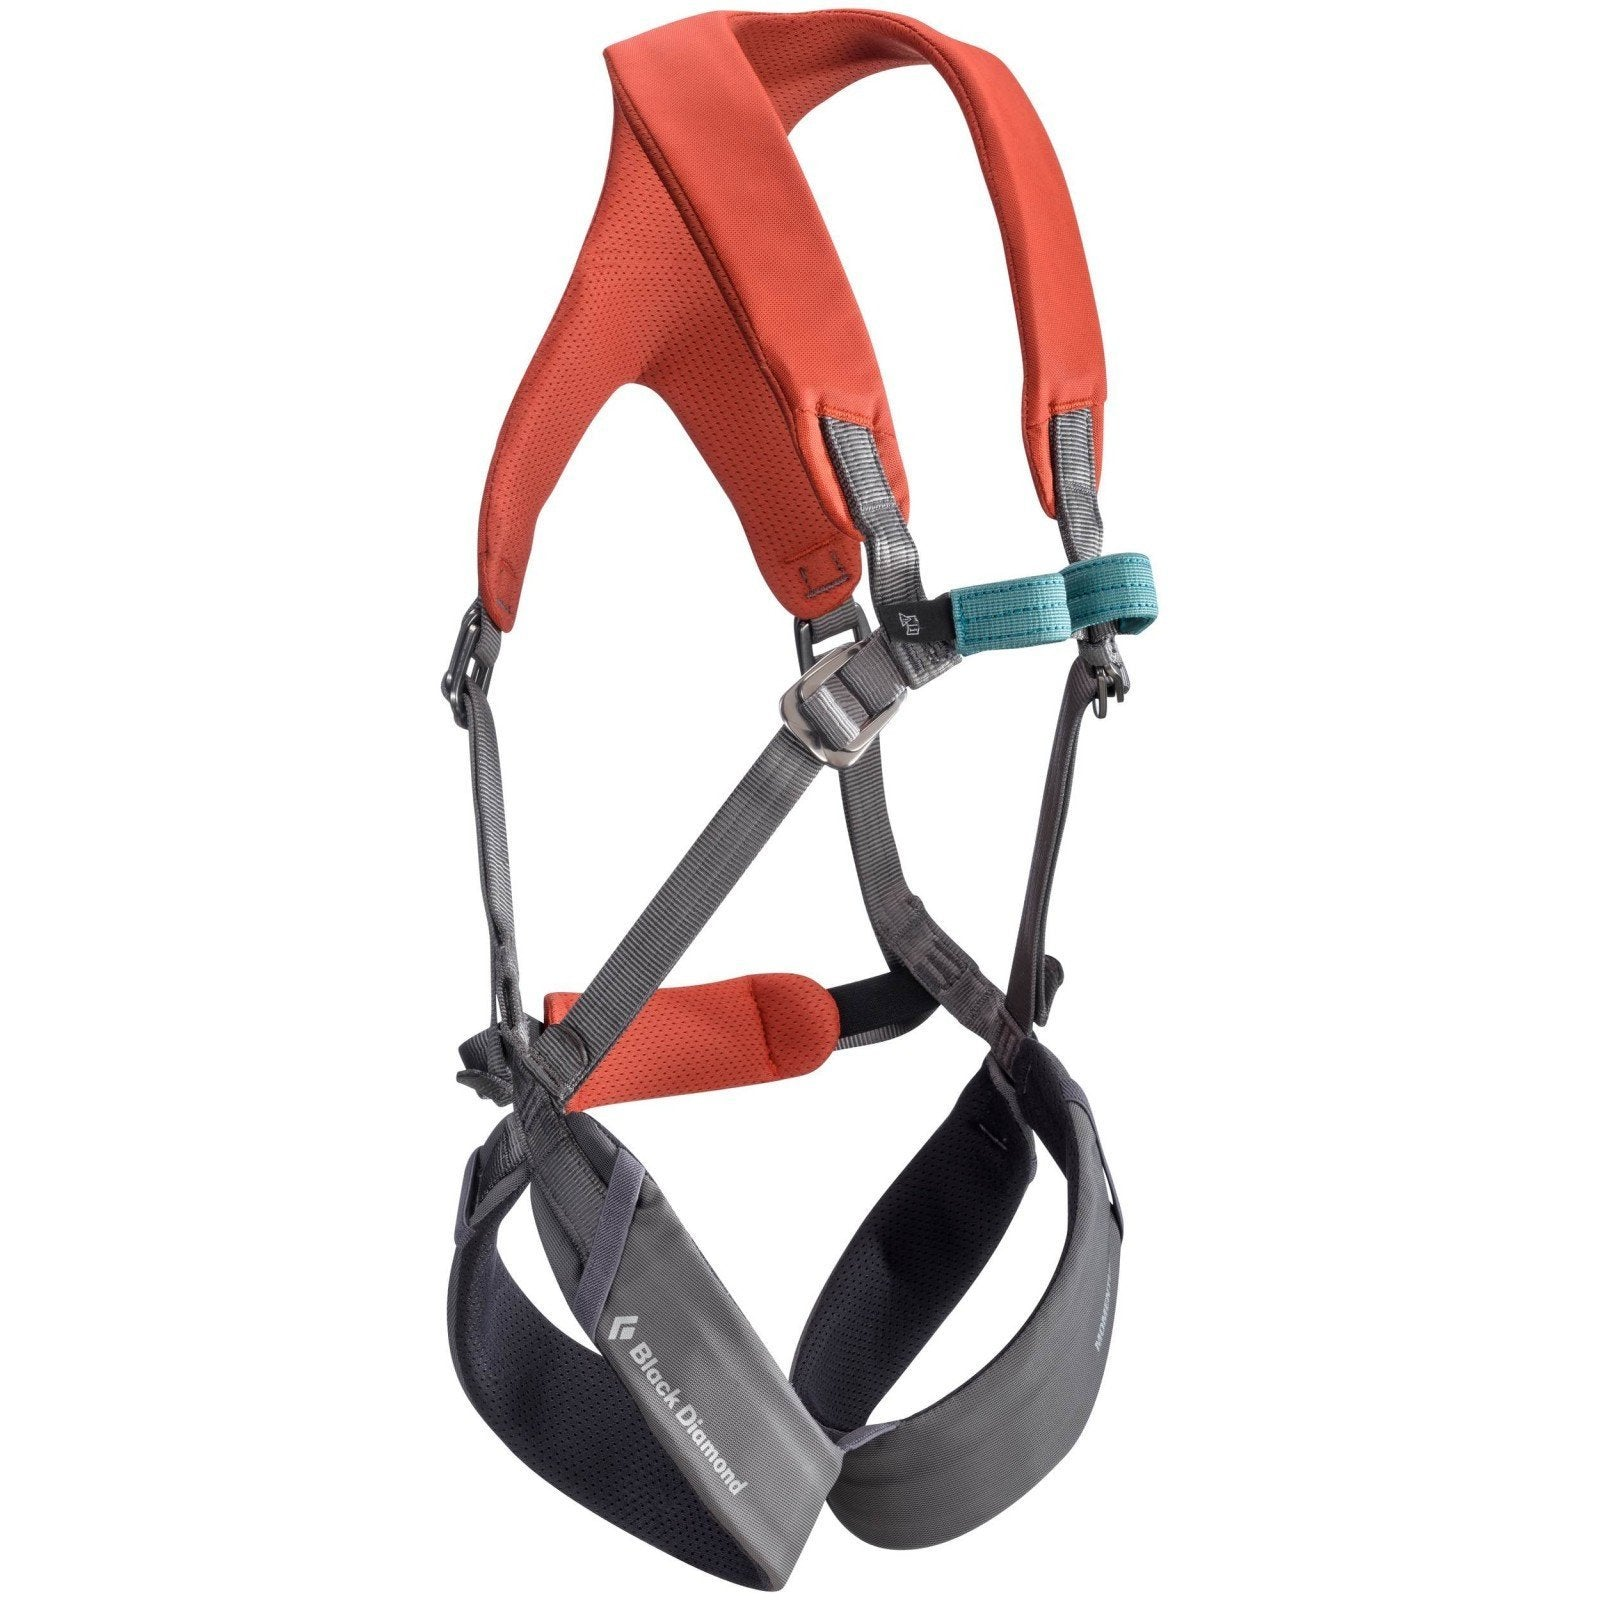 Black Diamond Momentum Kids Full Body Harness, in orange and grey colours